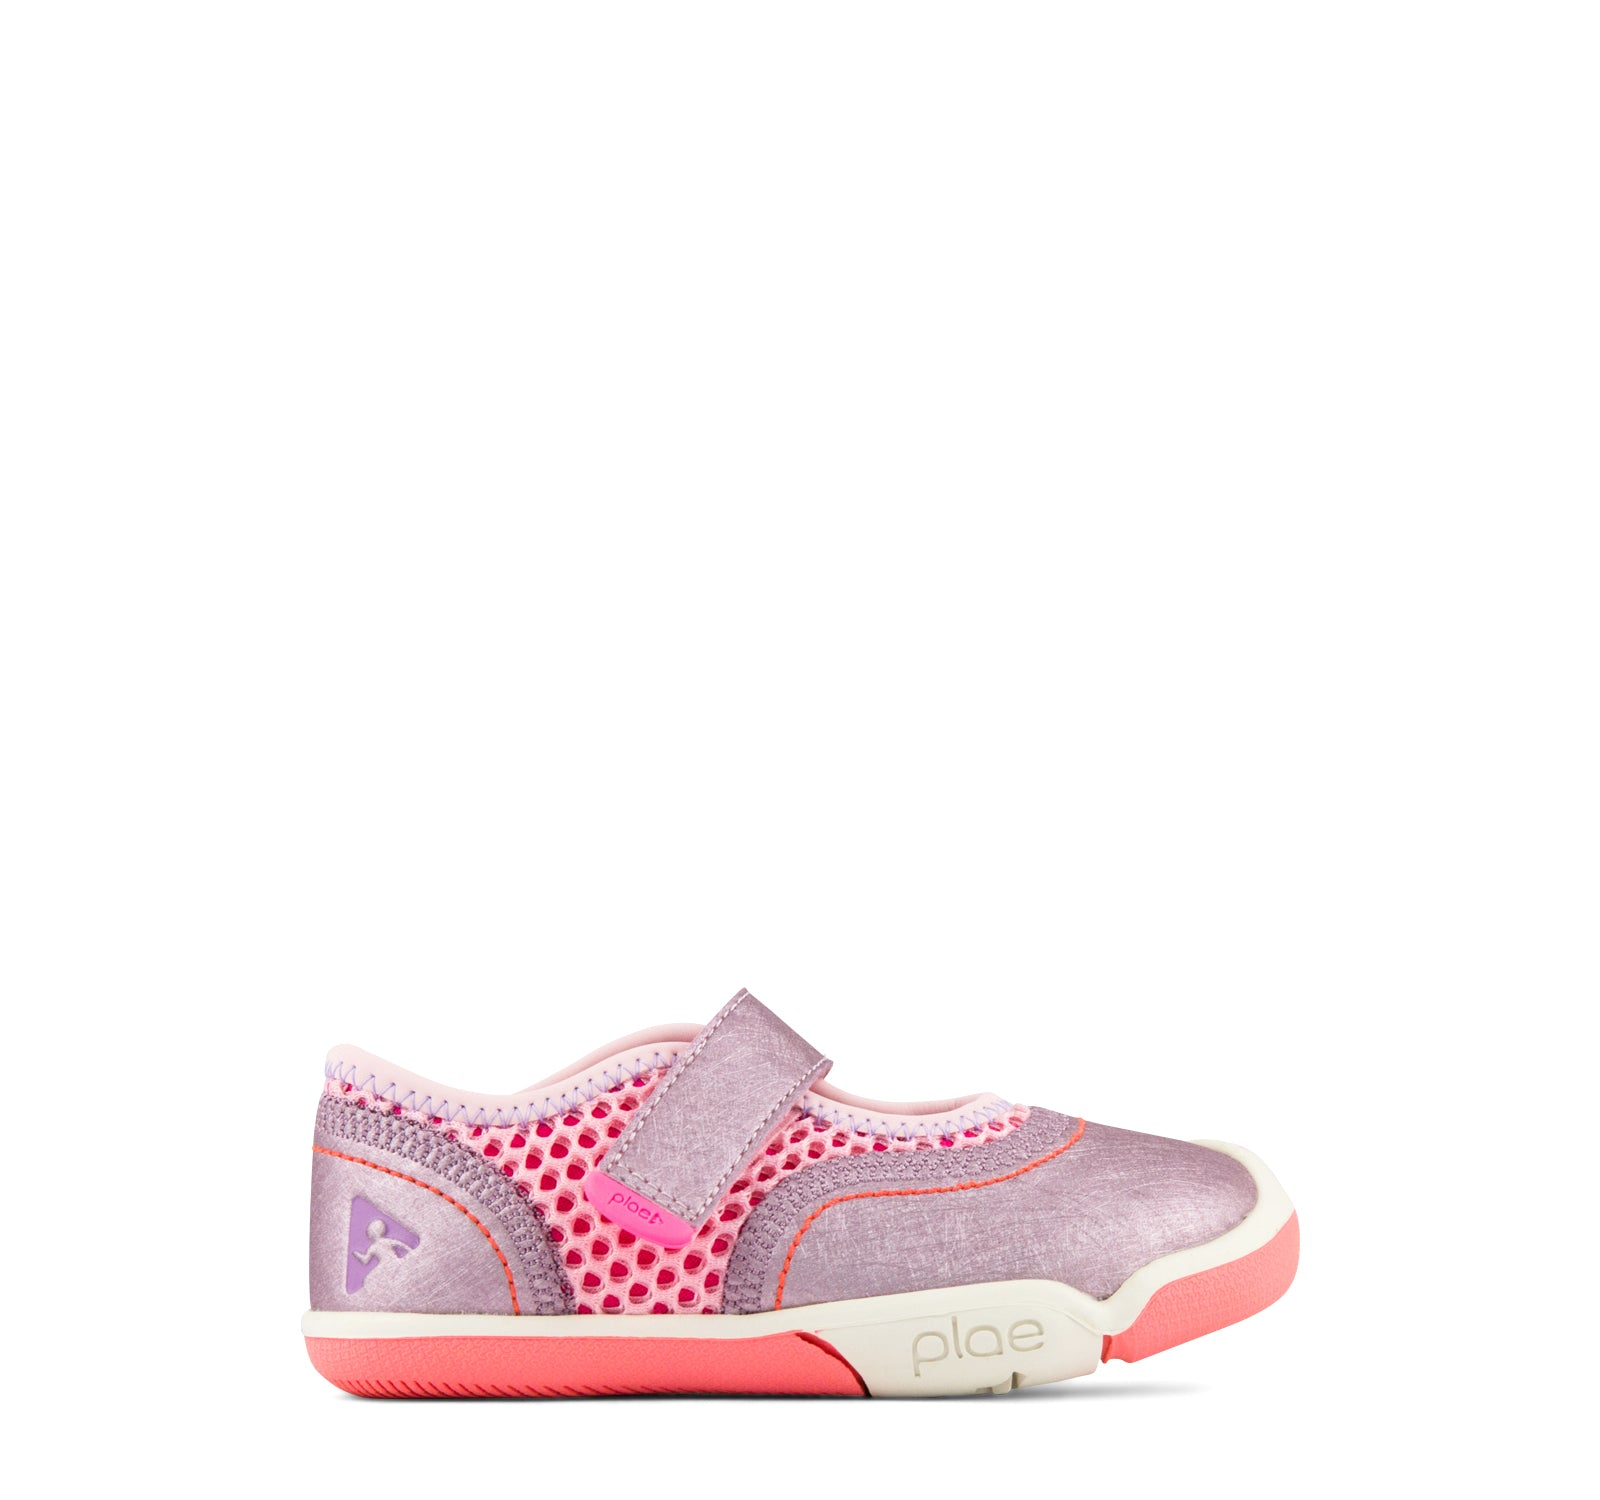 Plae Emme Girls' Sneaker in Lotus